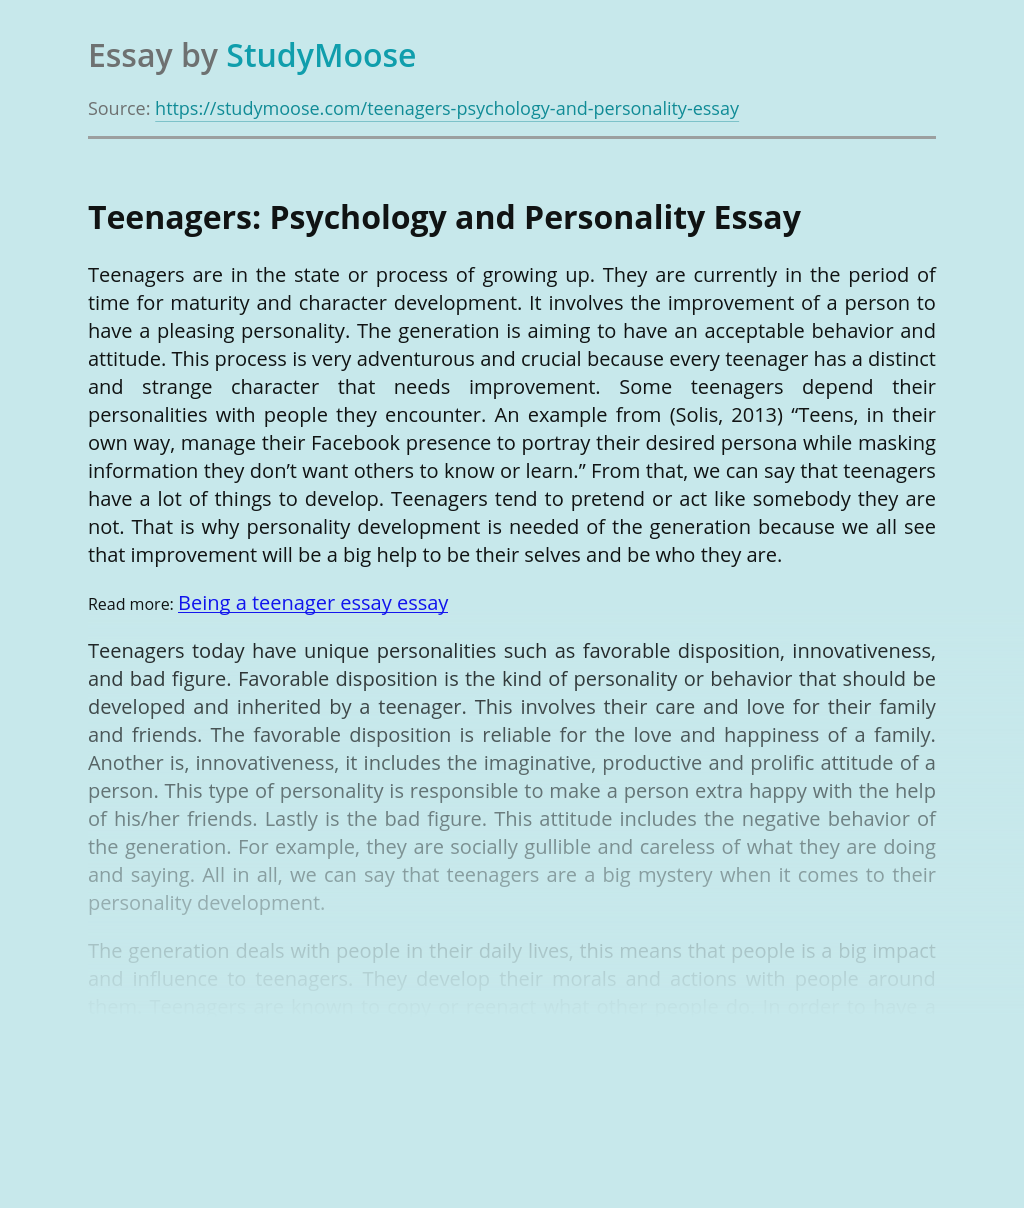 Teenagers: Psychology and Personality